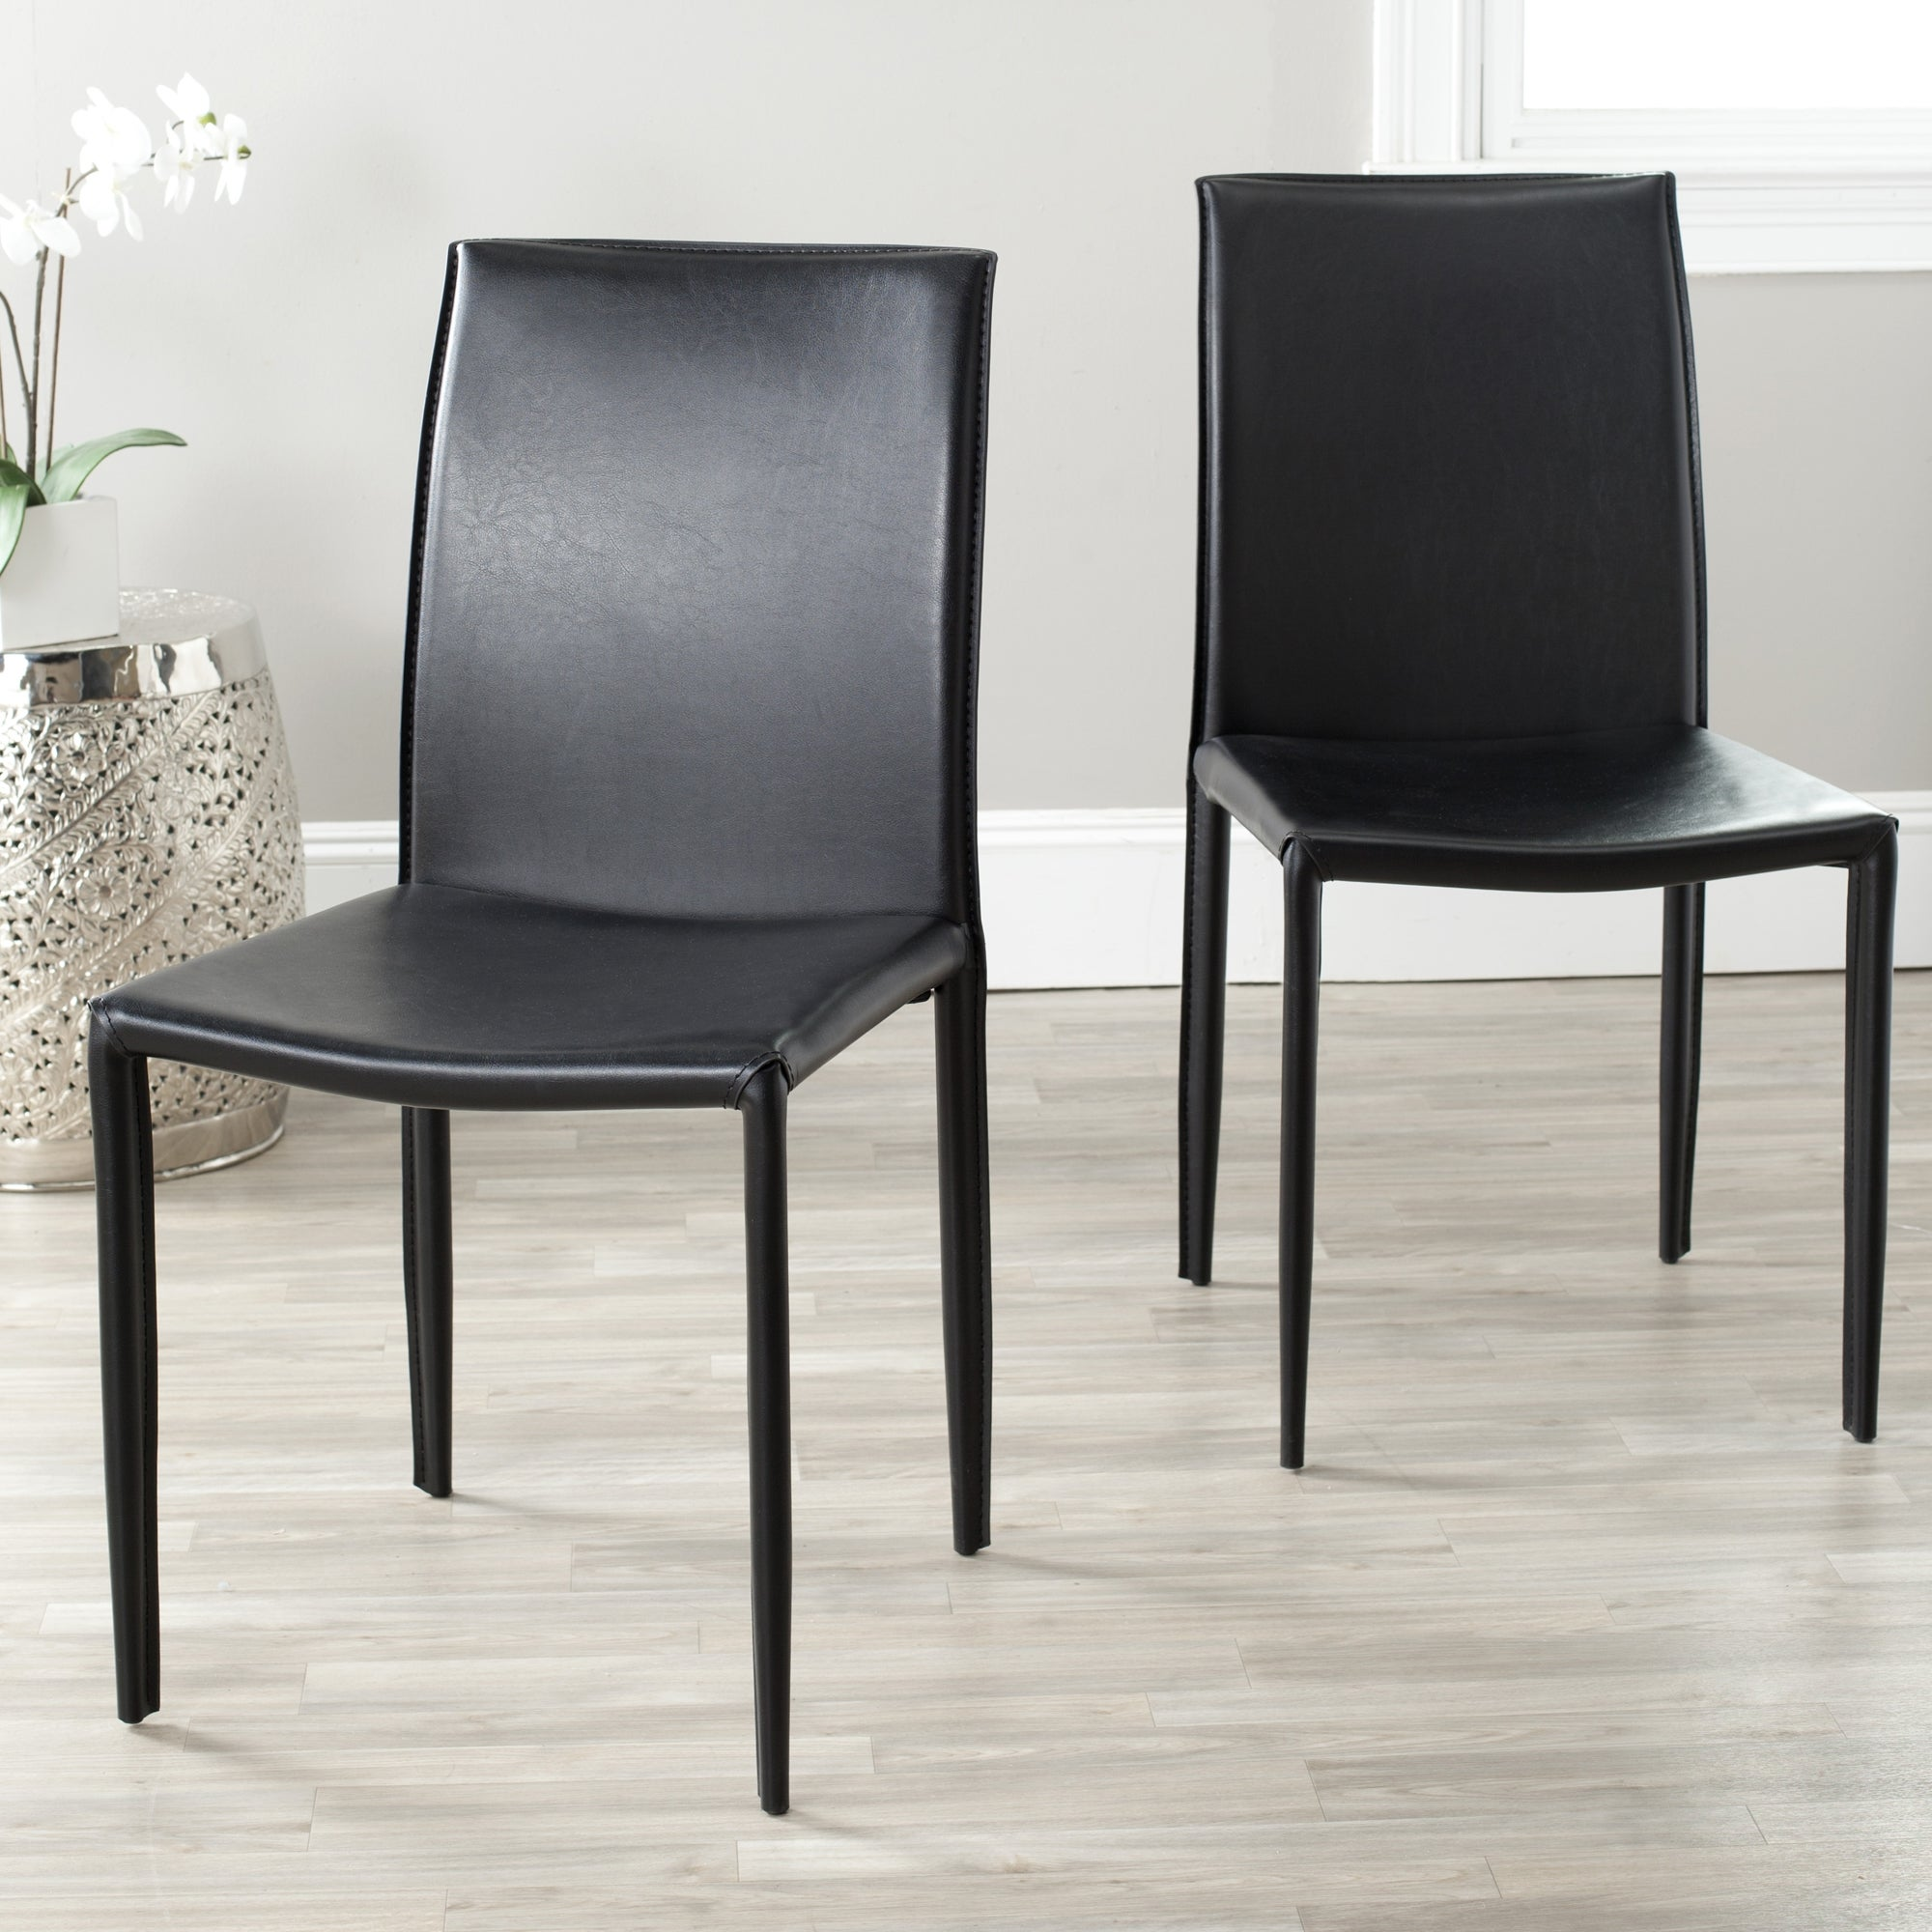 Details About Safavieh Mid Century Dining Jazzy Bonded Leather Black Chairs Set Of 2